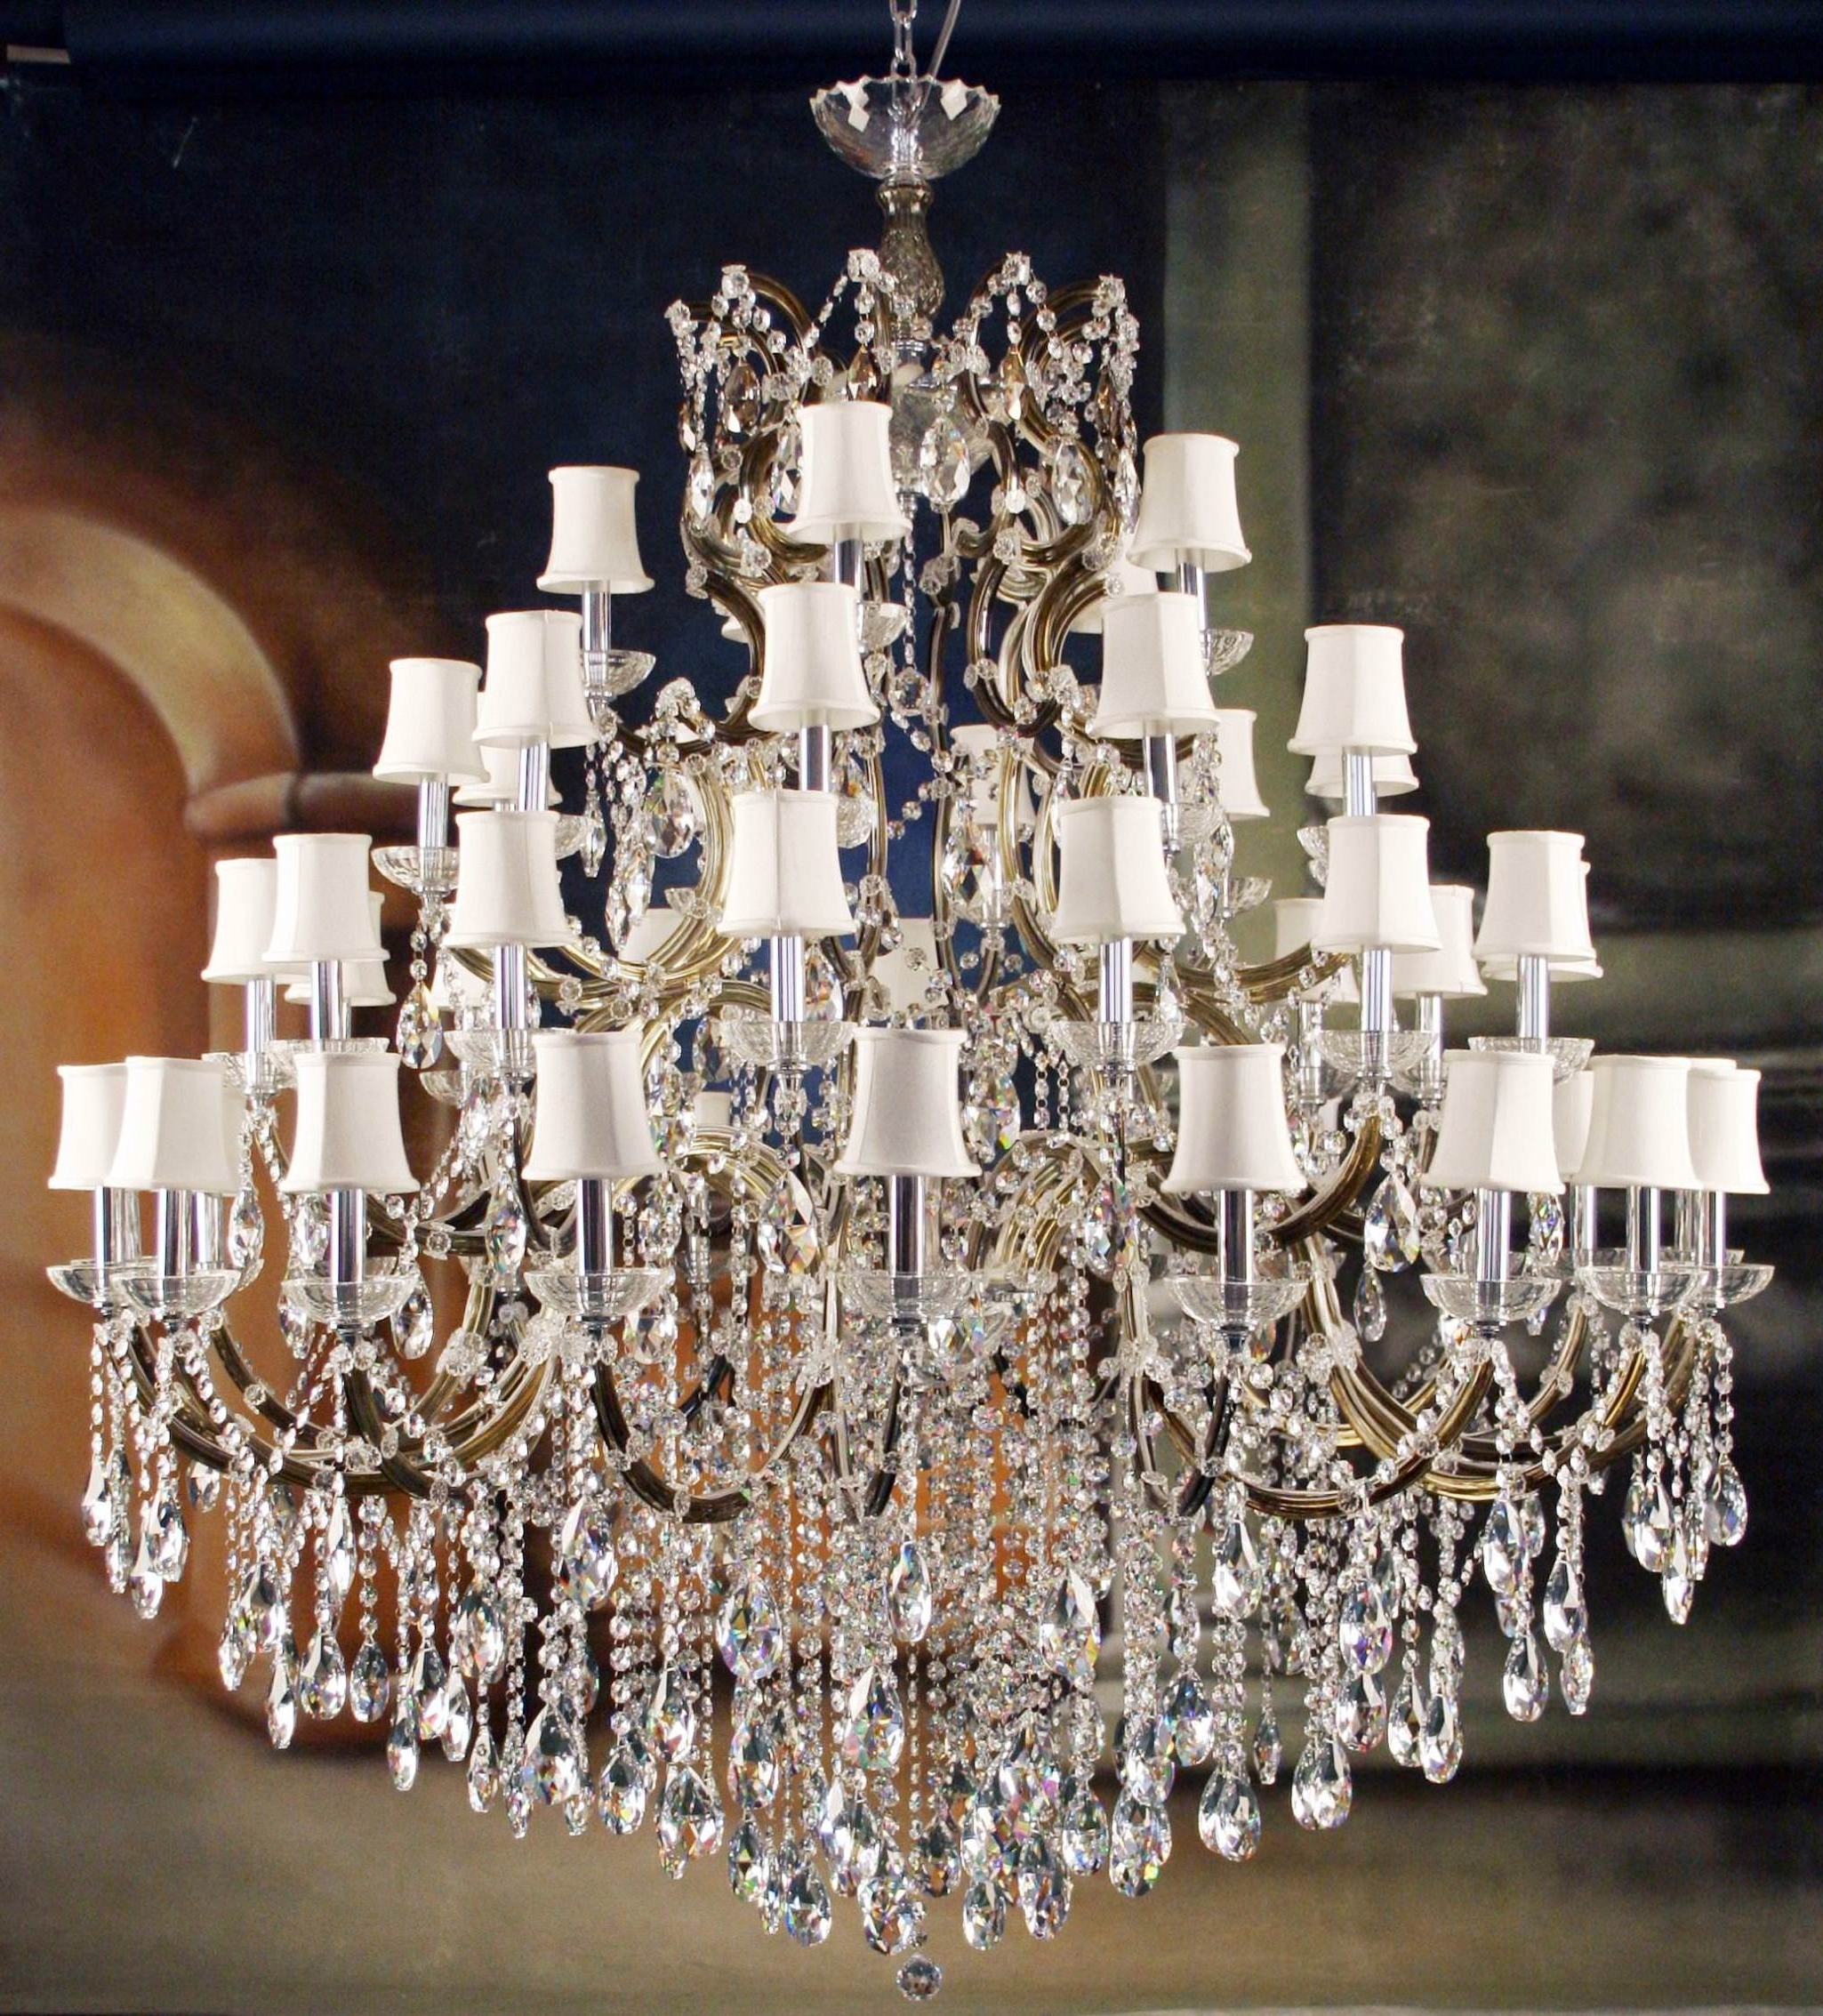 Modern Small Chandeliers With Widely Used Chandelier: Extraordinary Small Chandeliers For Bedrooms Mini (View 15 of 15)